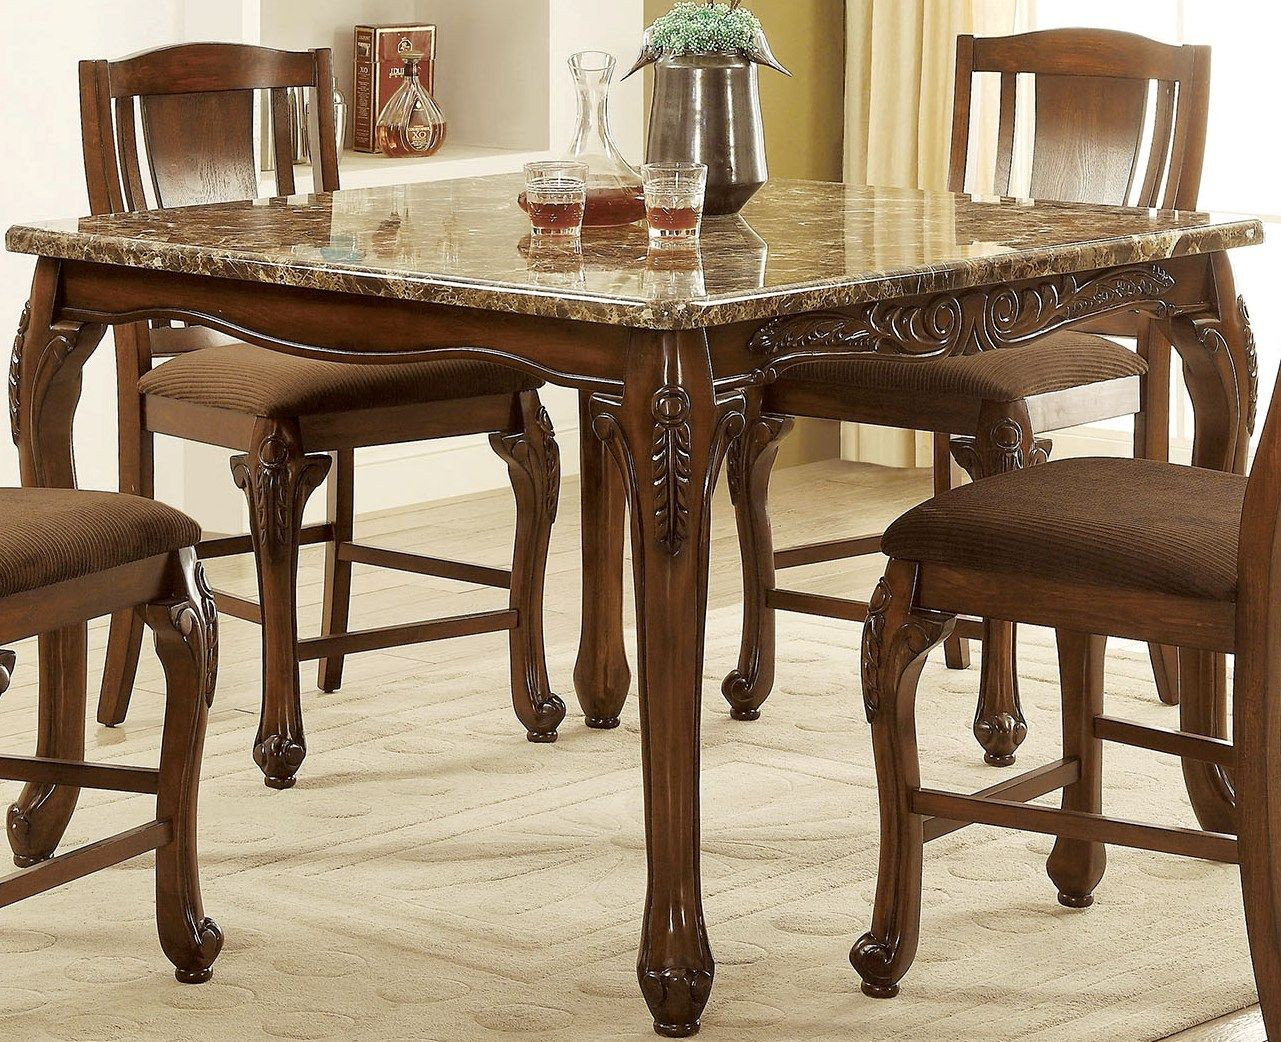 Johannesburg Brown Cherry Counter Height Dining Table from Furniture of America  Coleman Furniture